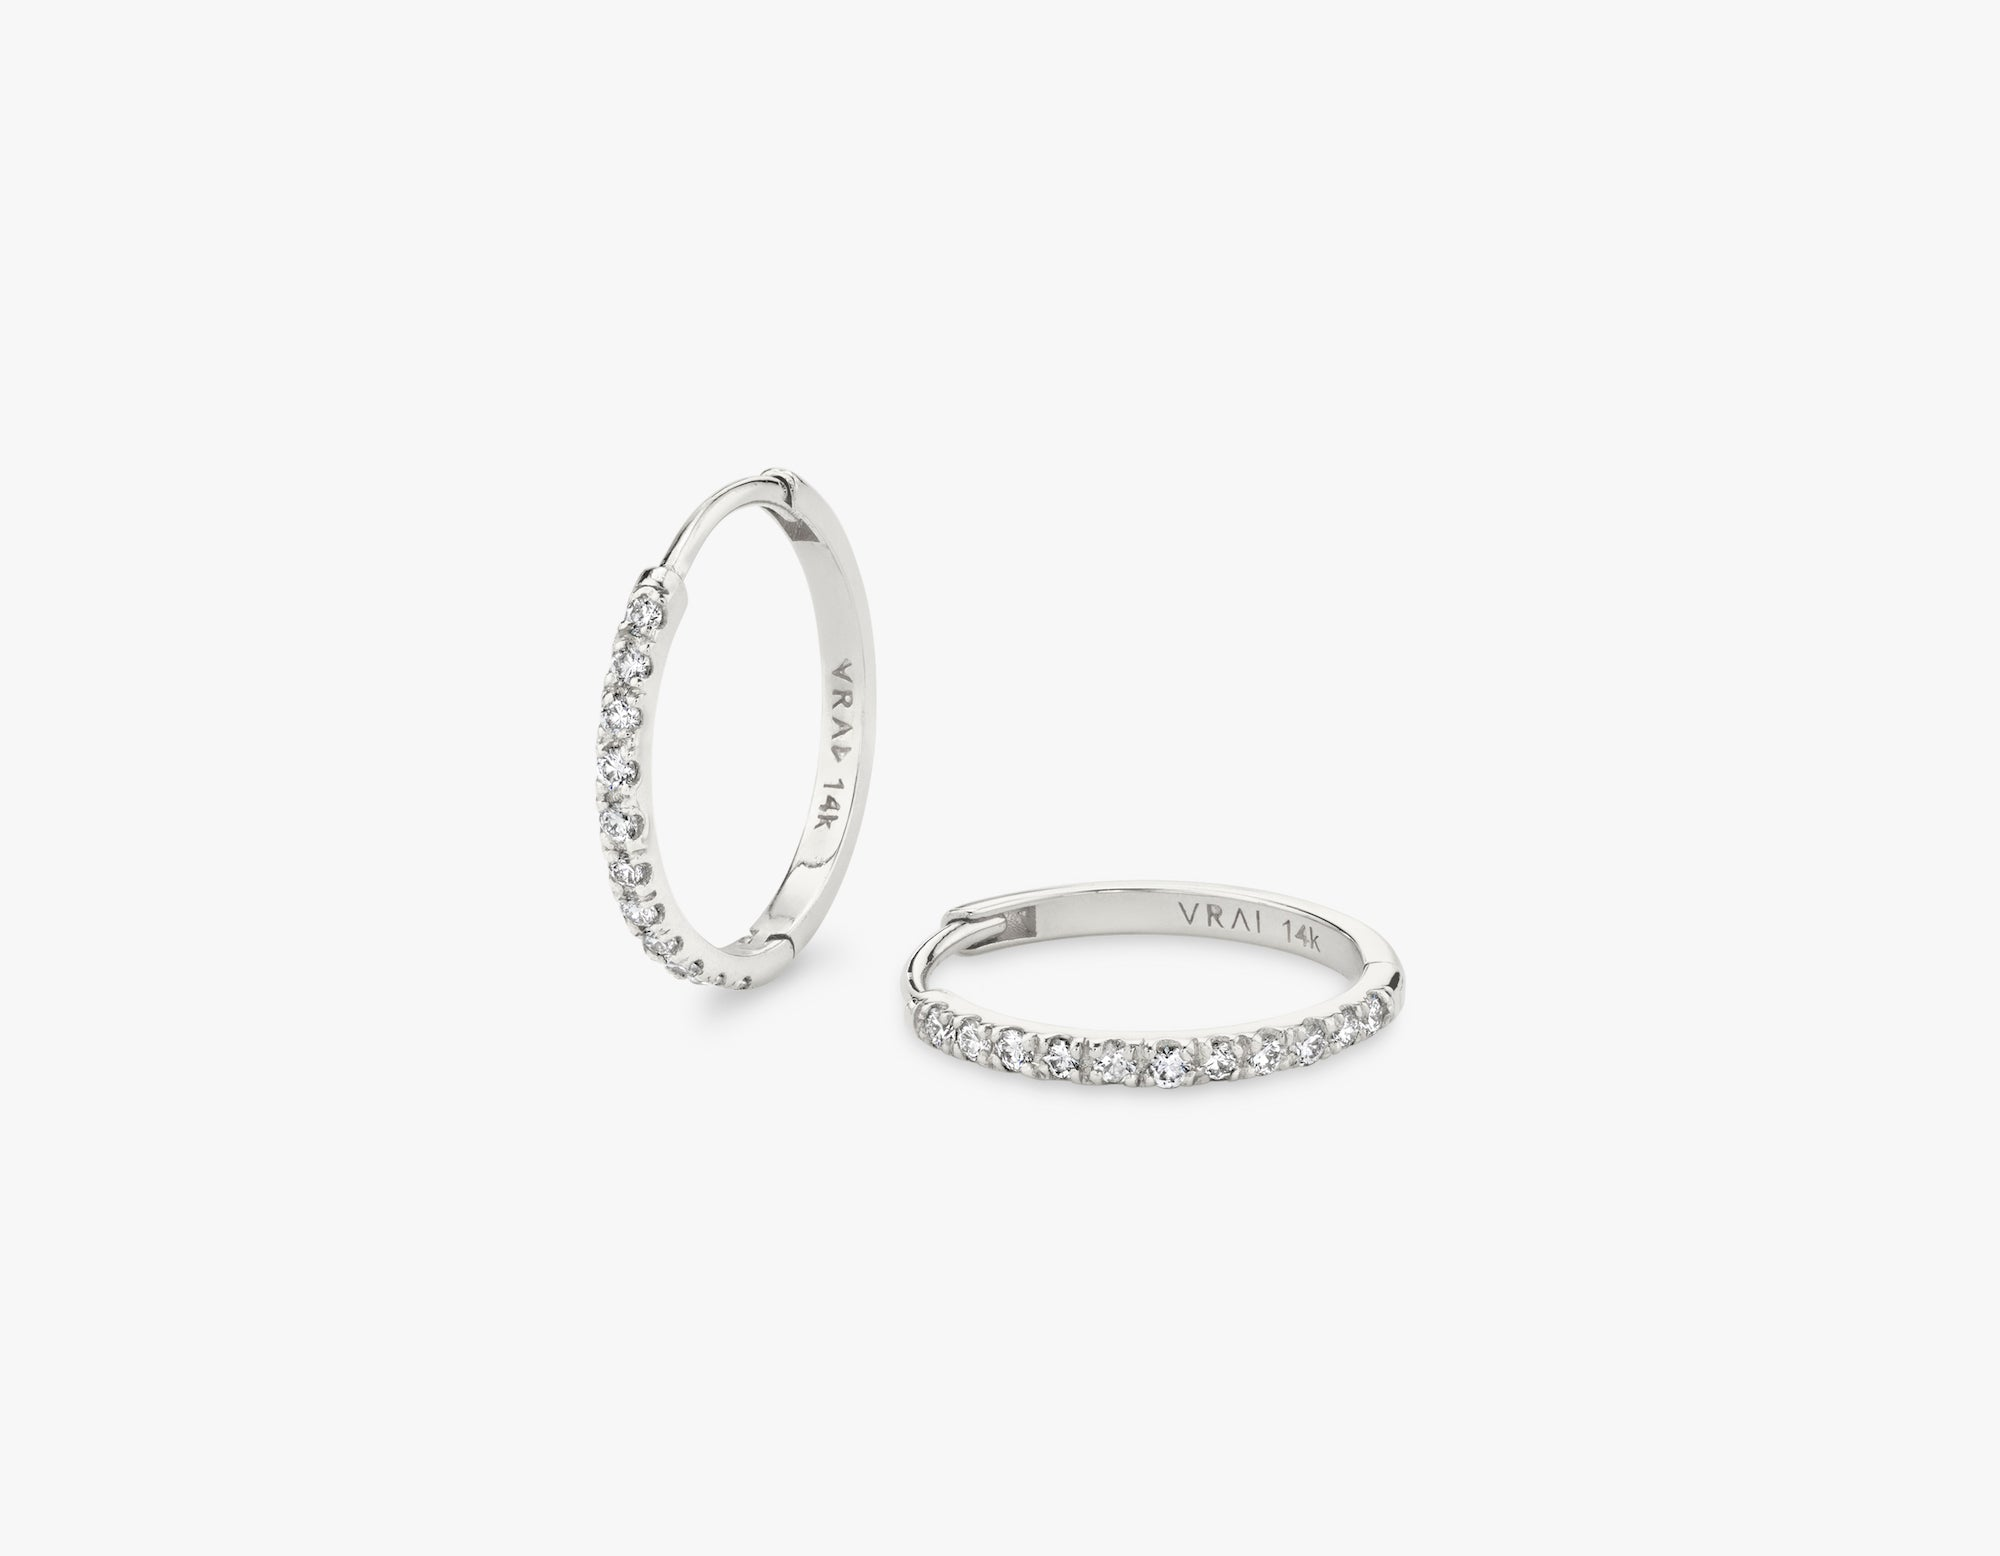 Vrai 14k solid gold simple classic Pave Diamond Huggie Hoops earrings hinge closure, 14K White Gold